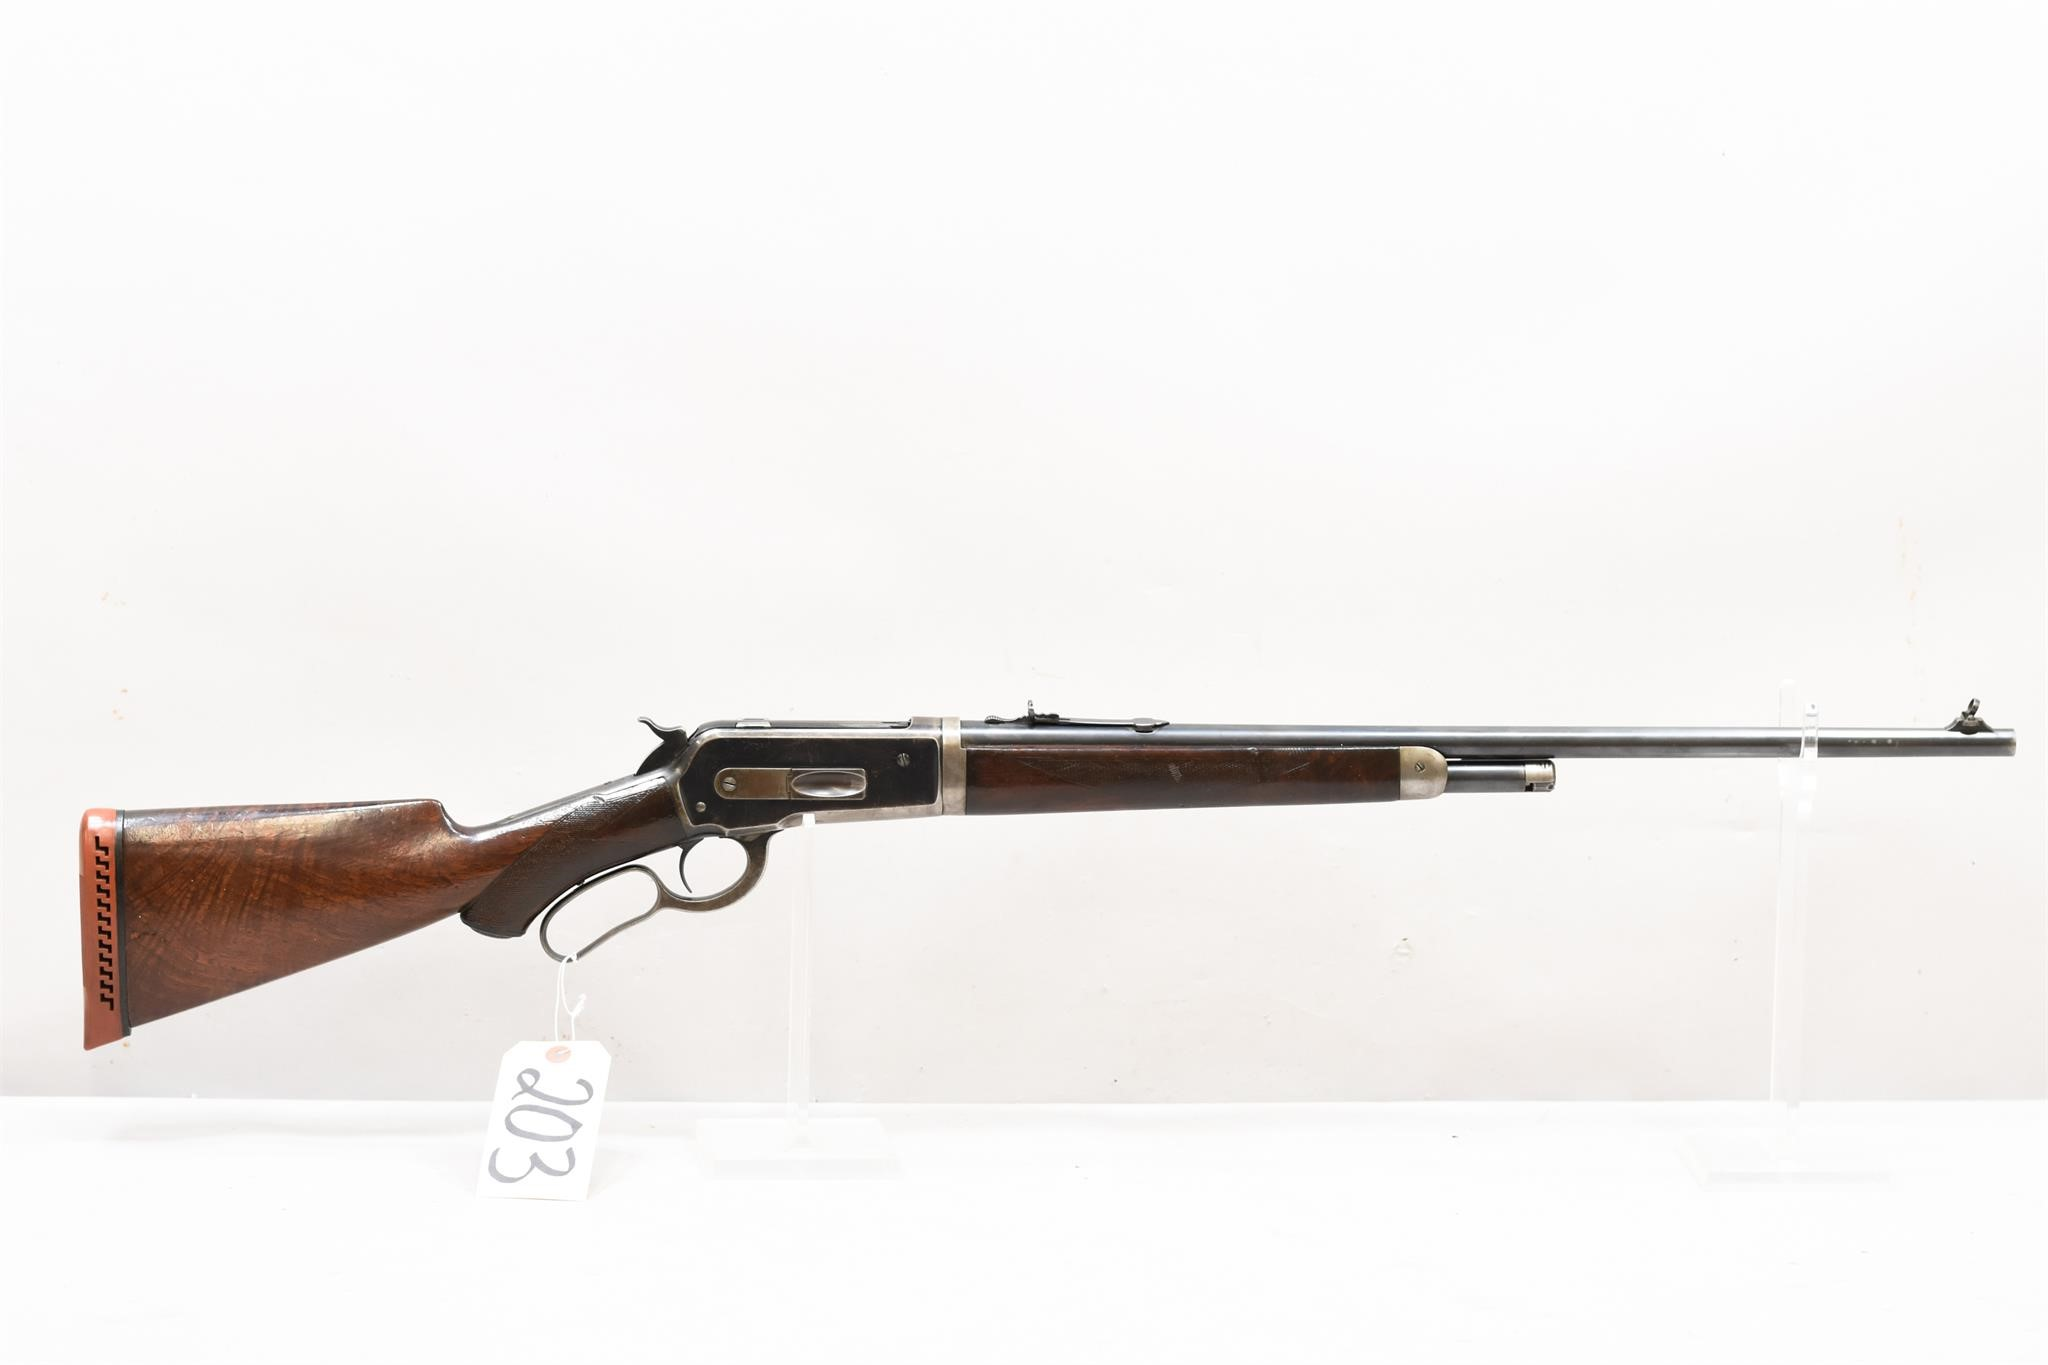 6/19/2021 Firearms & Sporting Goods Auction